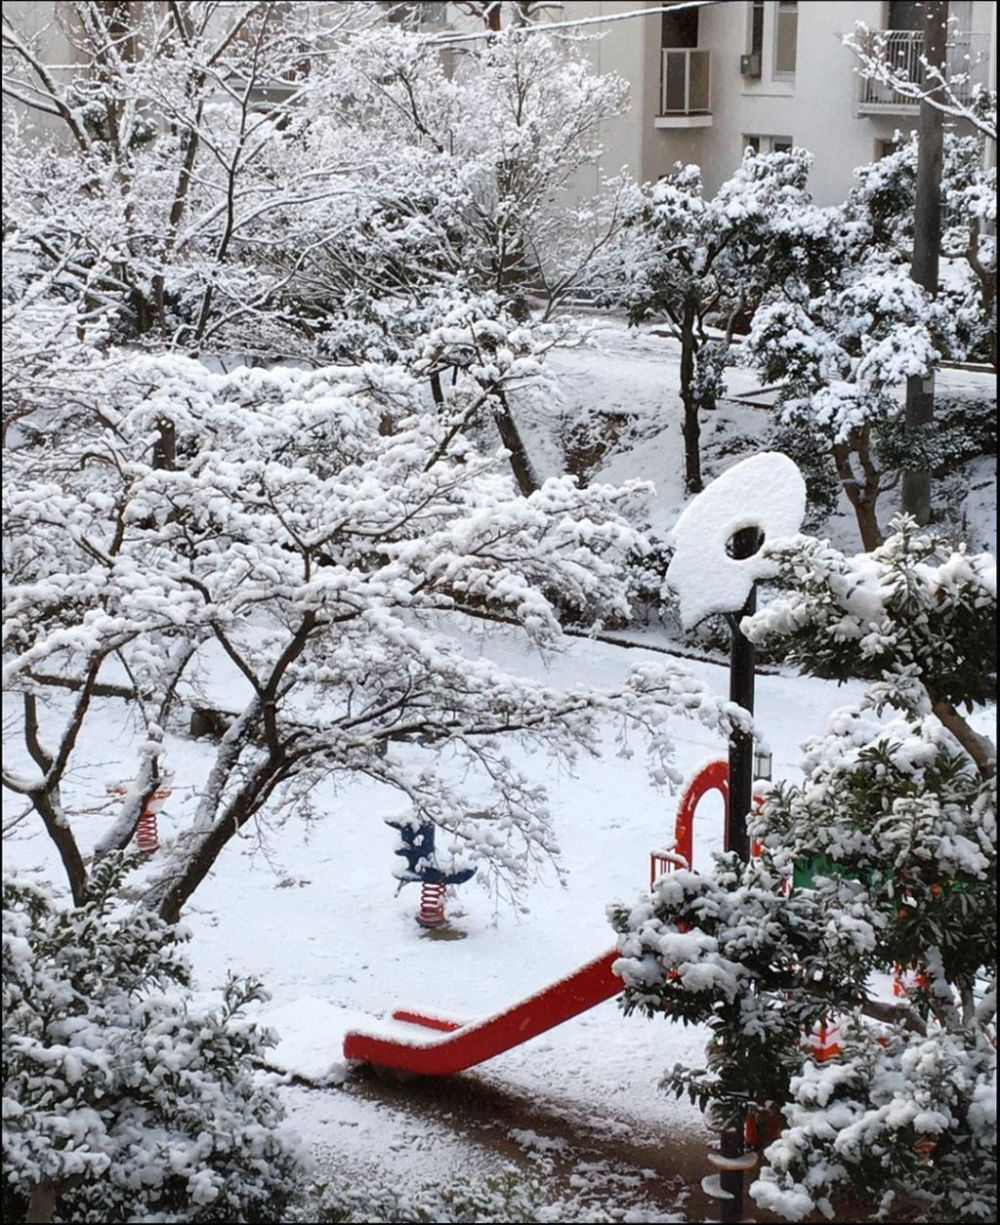 Snowstorm at The Public Park in Osaka